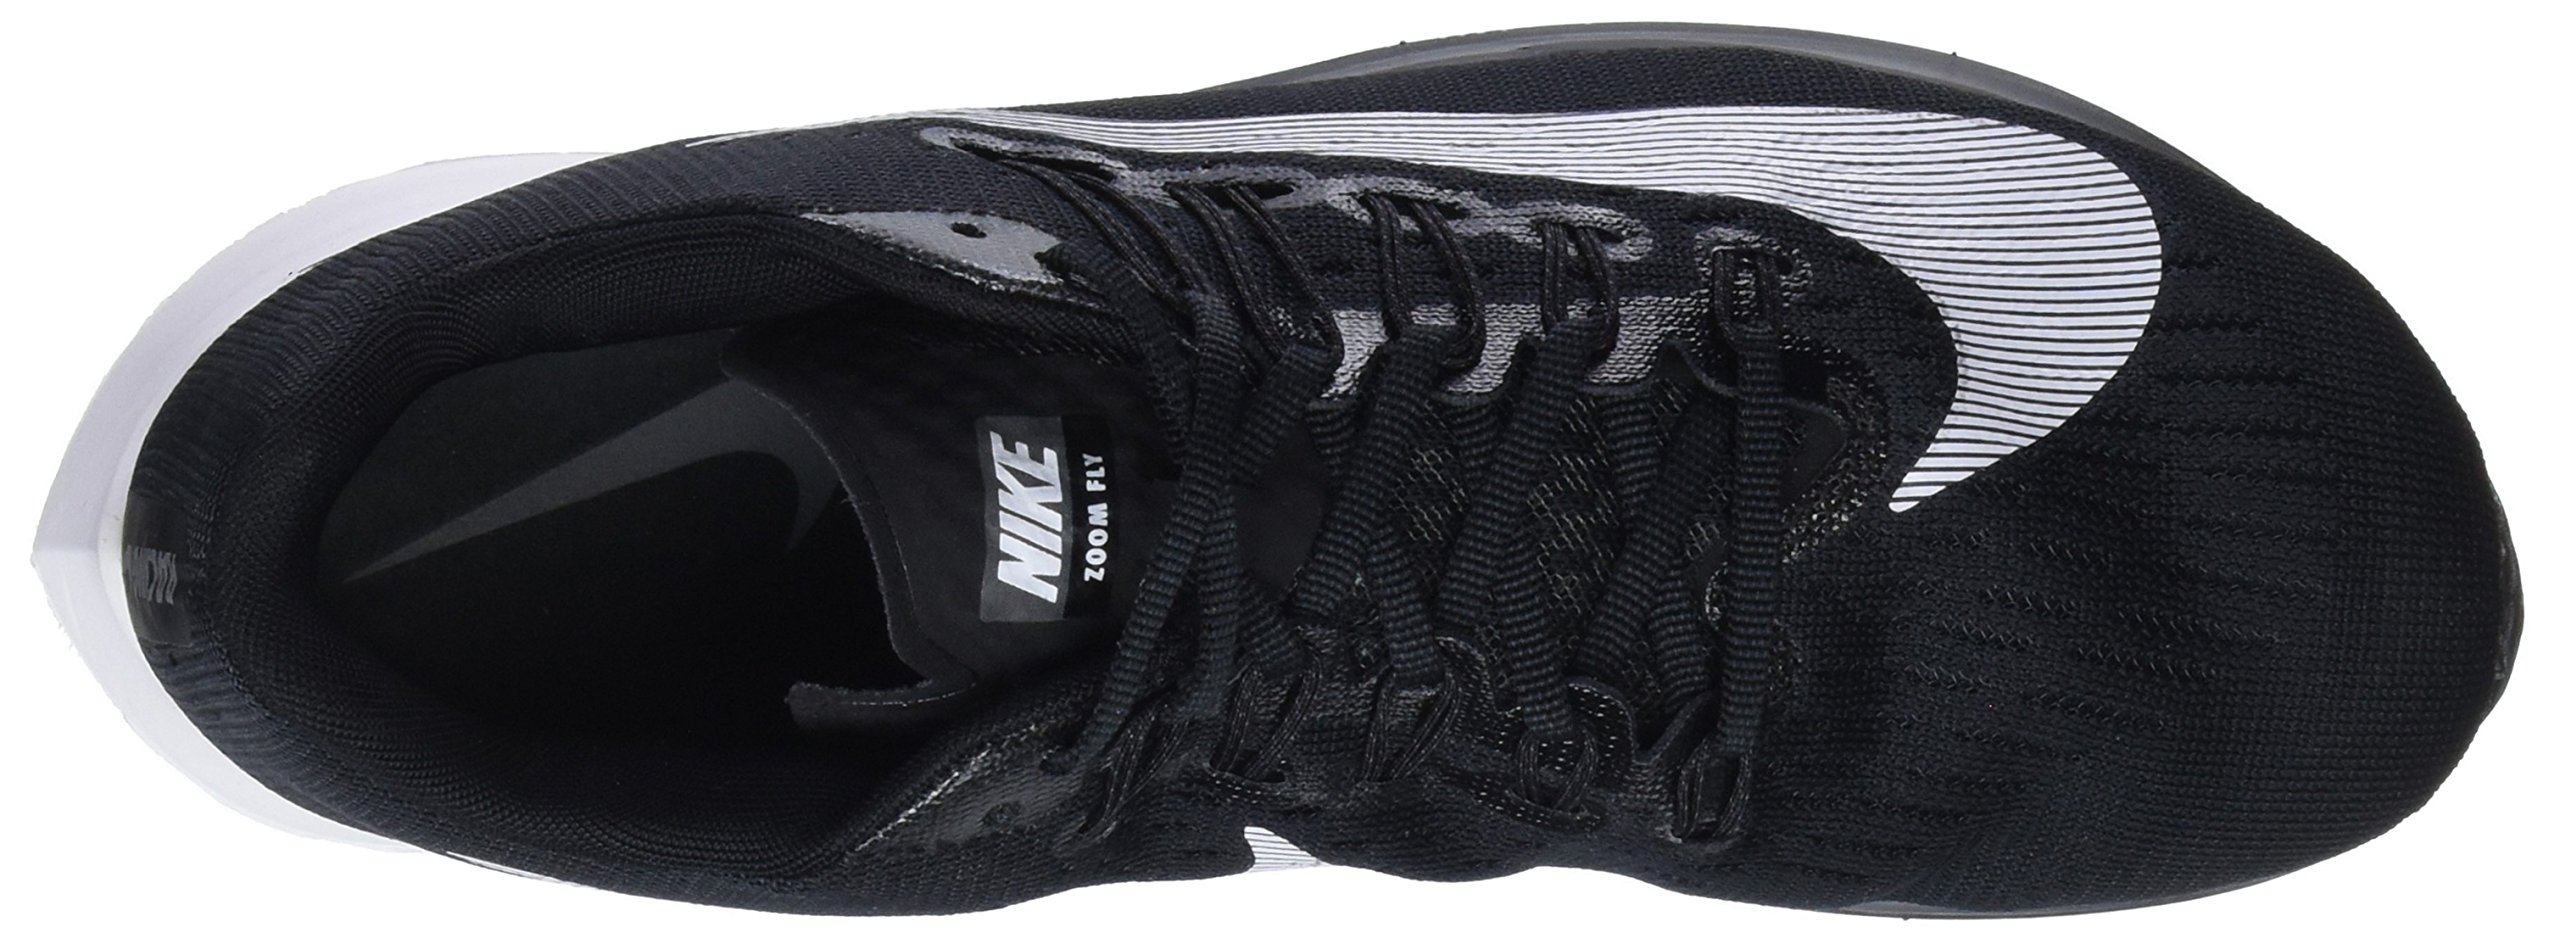 NIKE Women's WMNS Zoom Fly, Black/White, 9 M US by NIKE (Image #7)